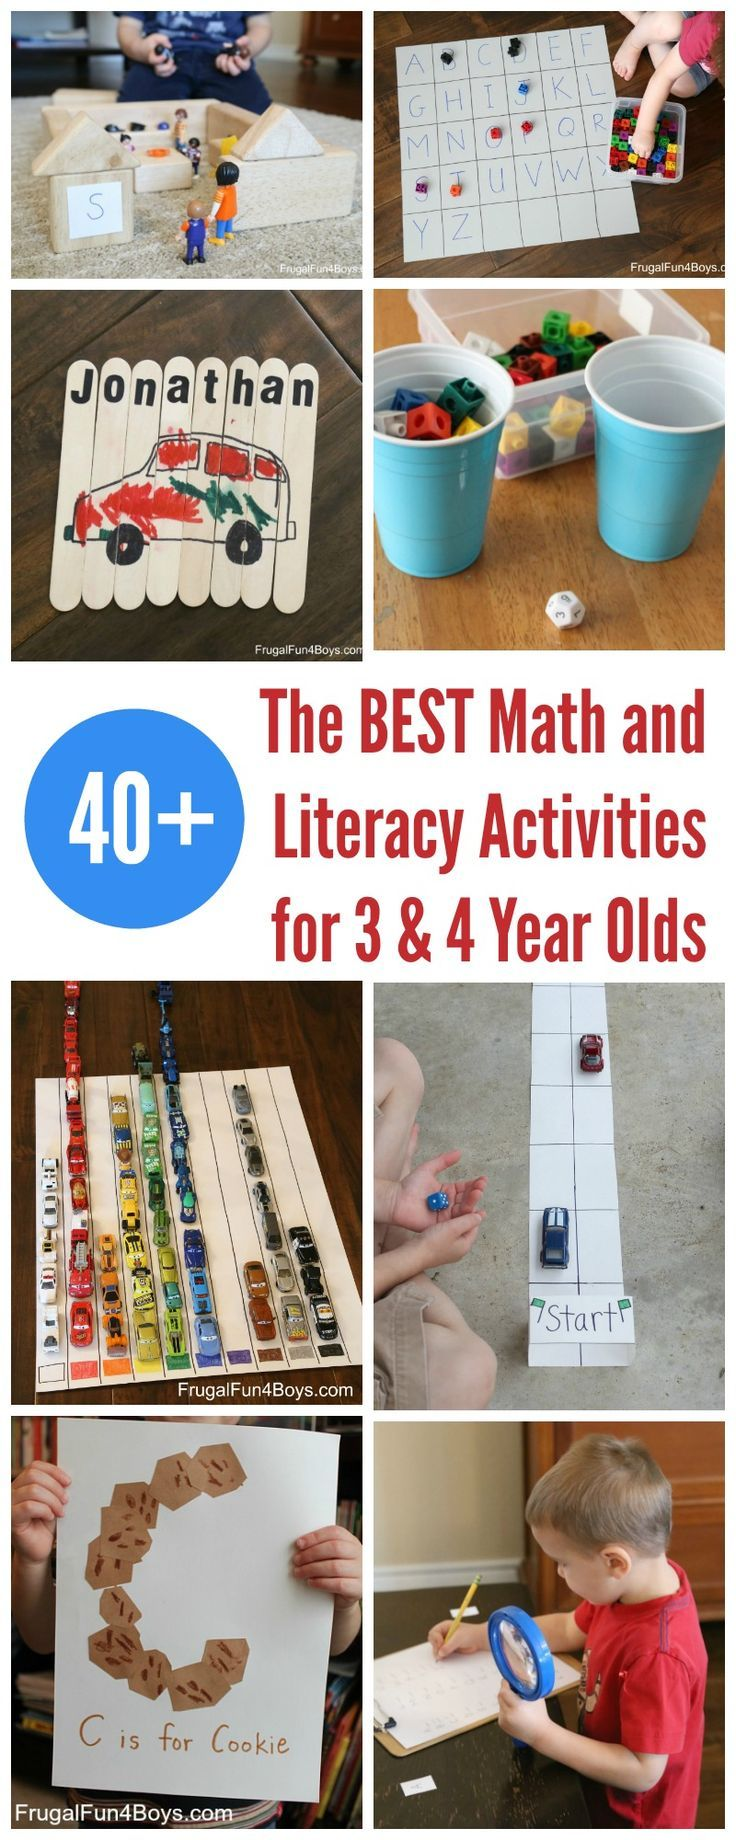 The BEST Math and Literacy Learning Activities